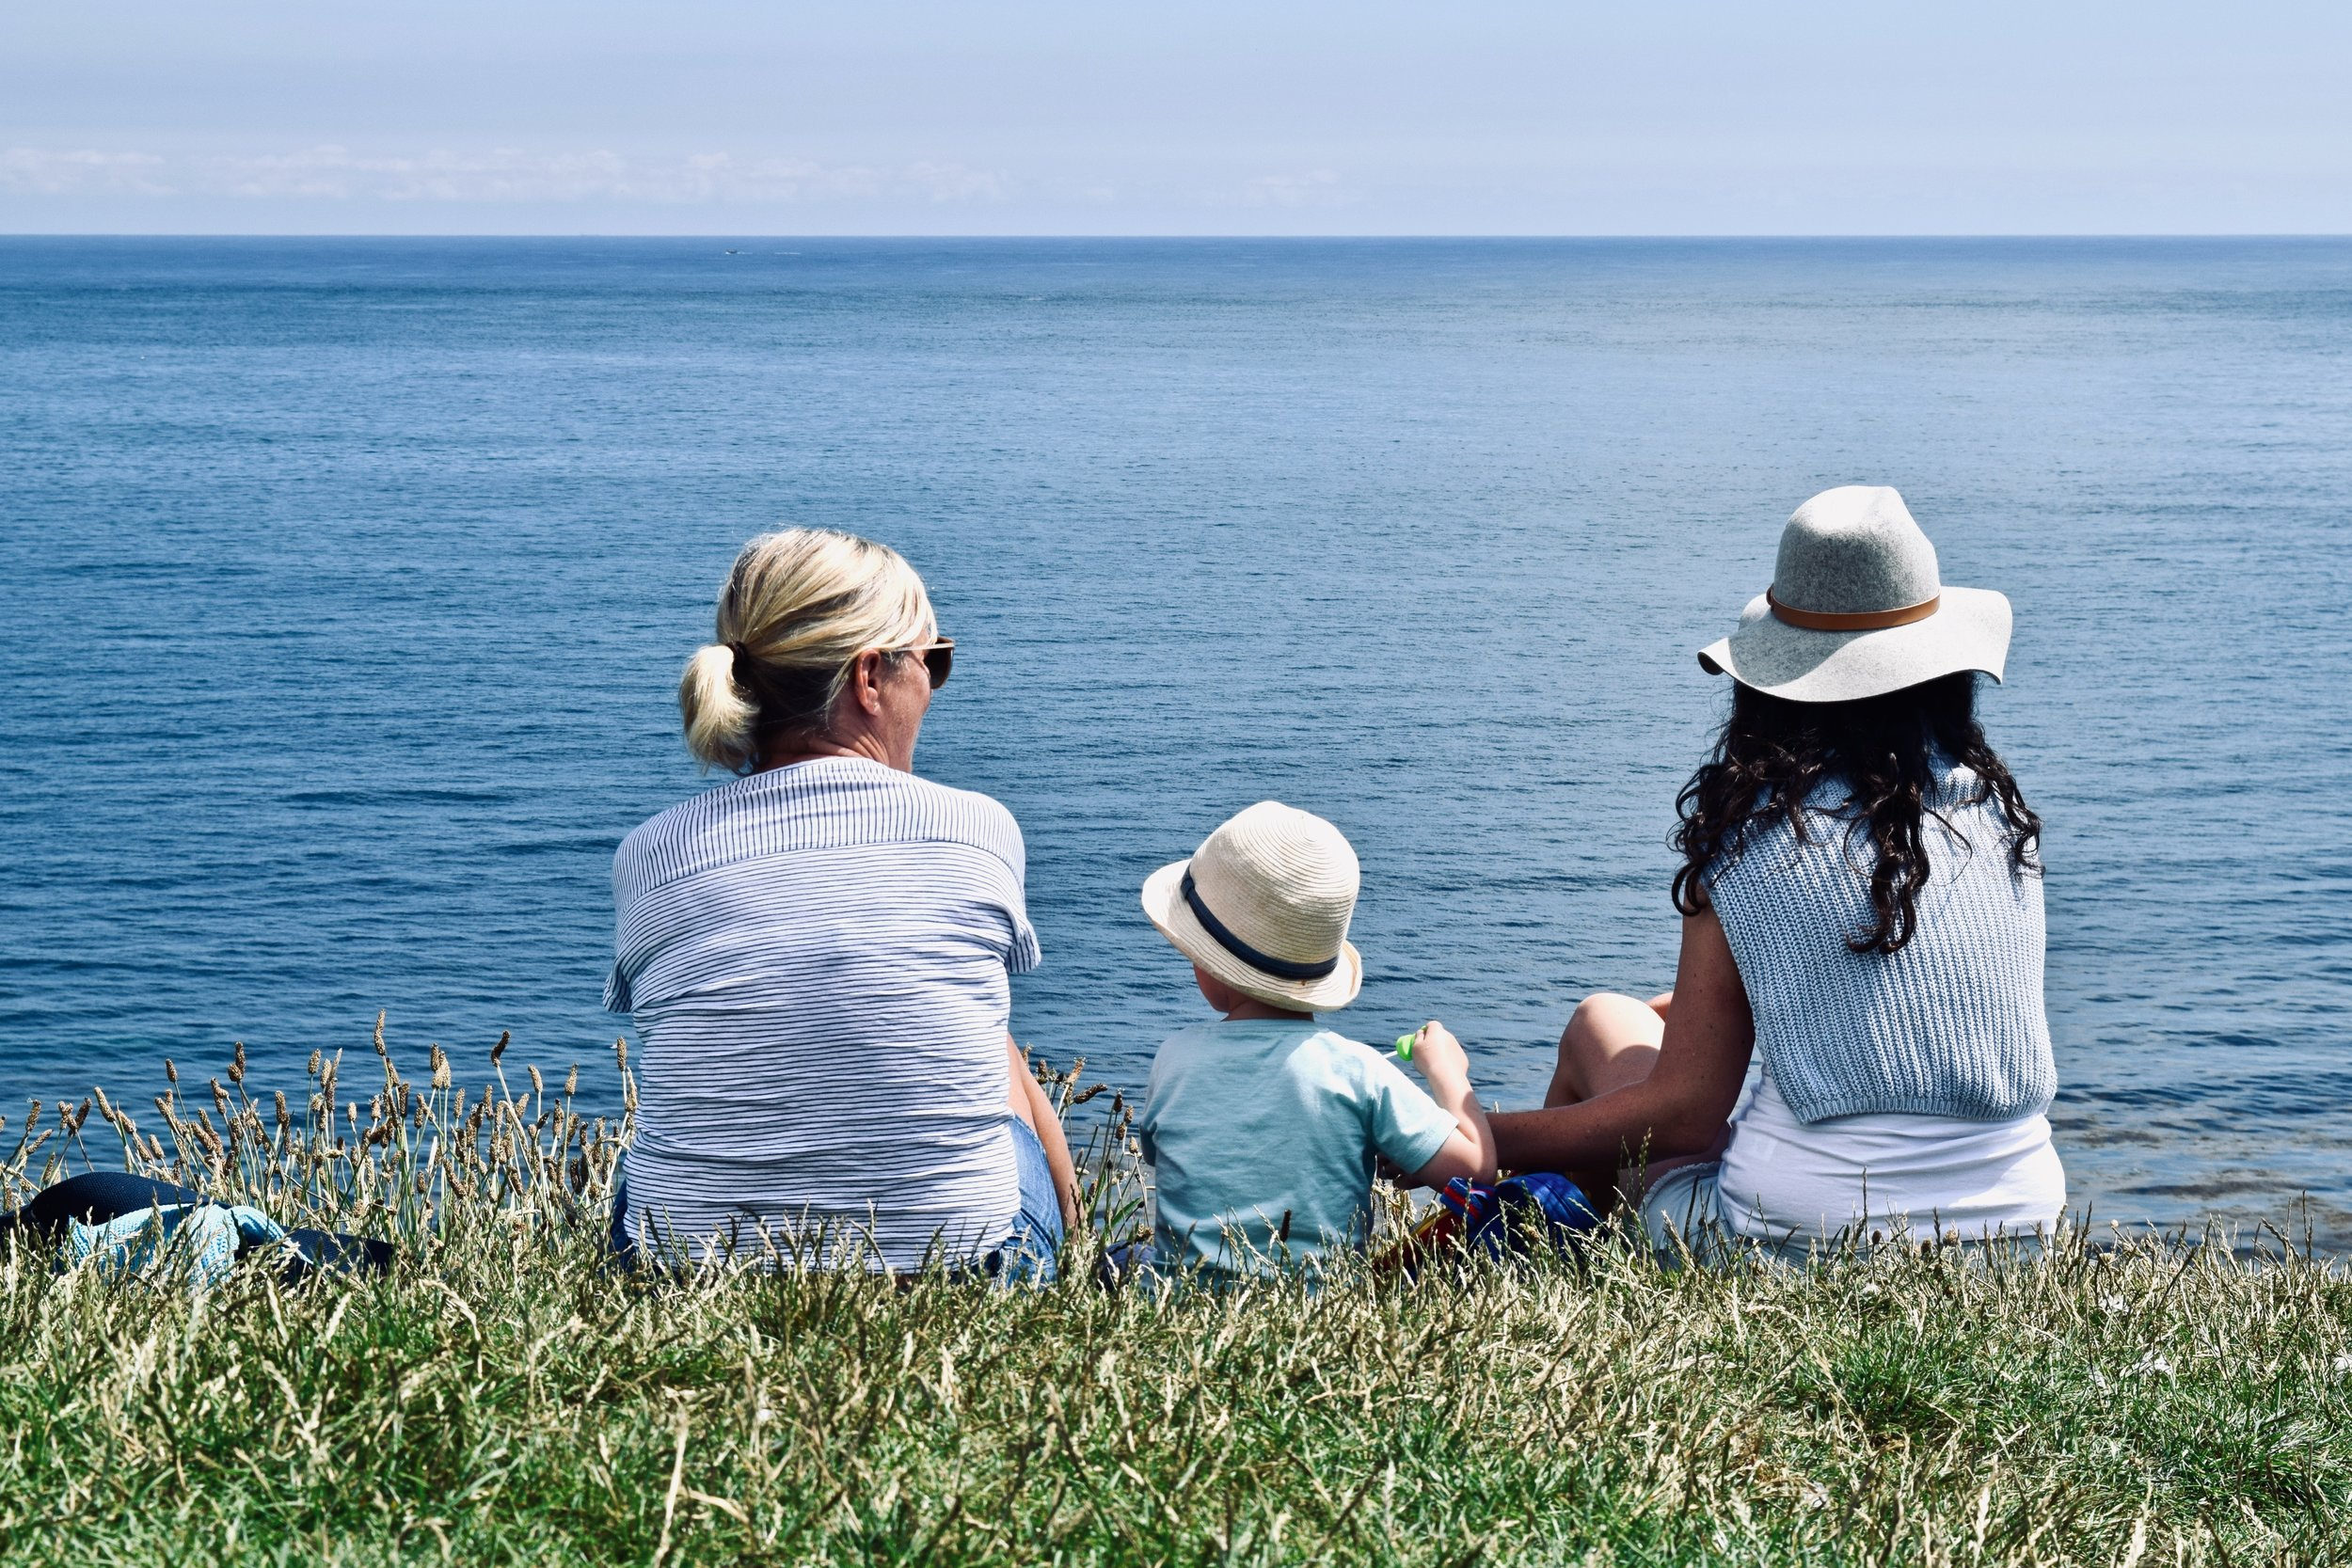 two adults and one small child sitting on the grass overlooking the ocean